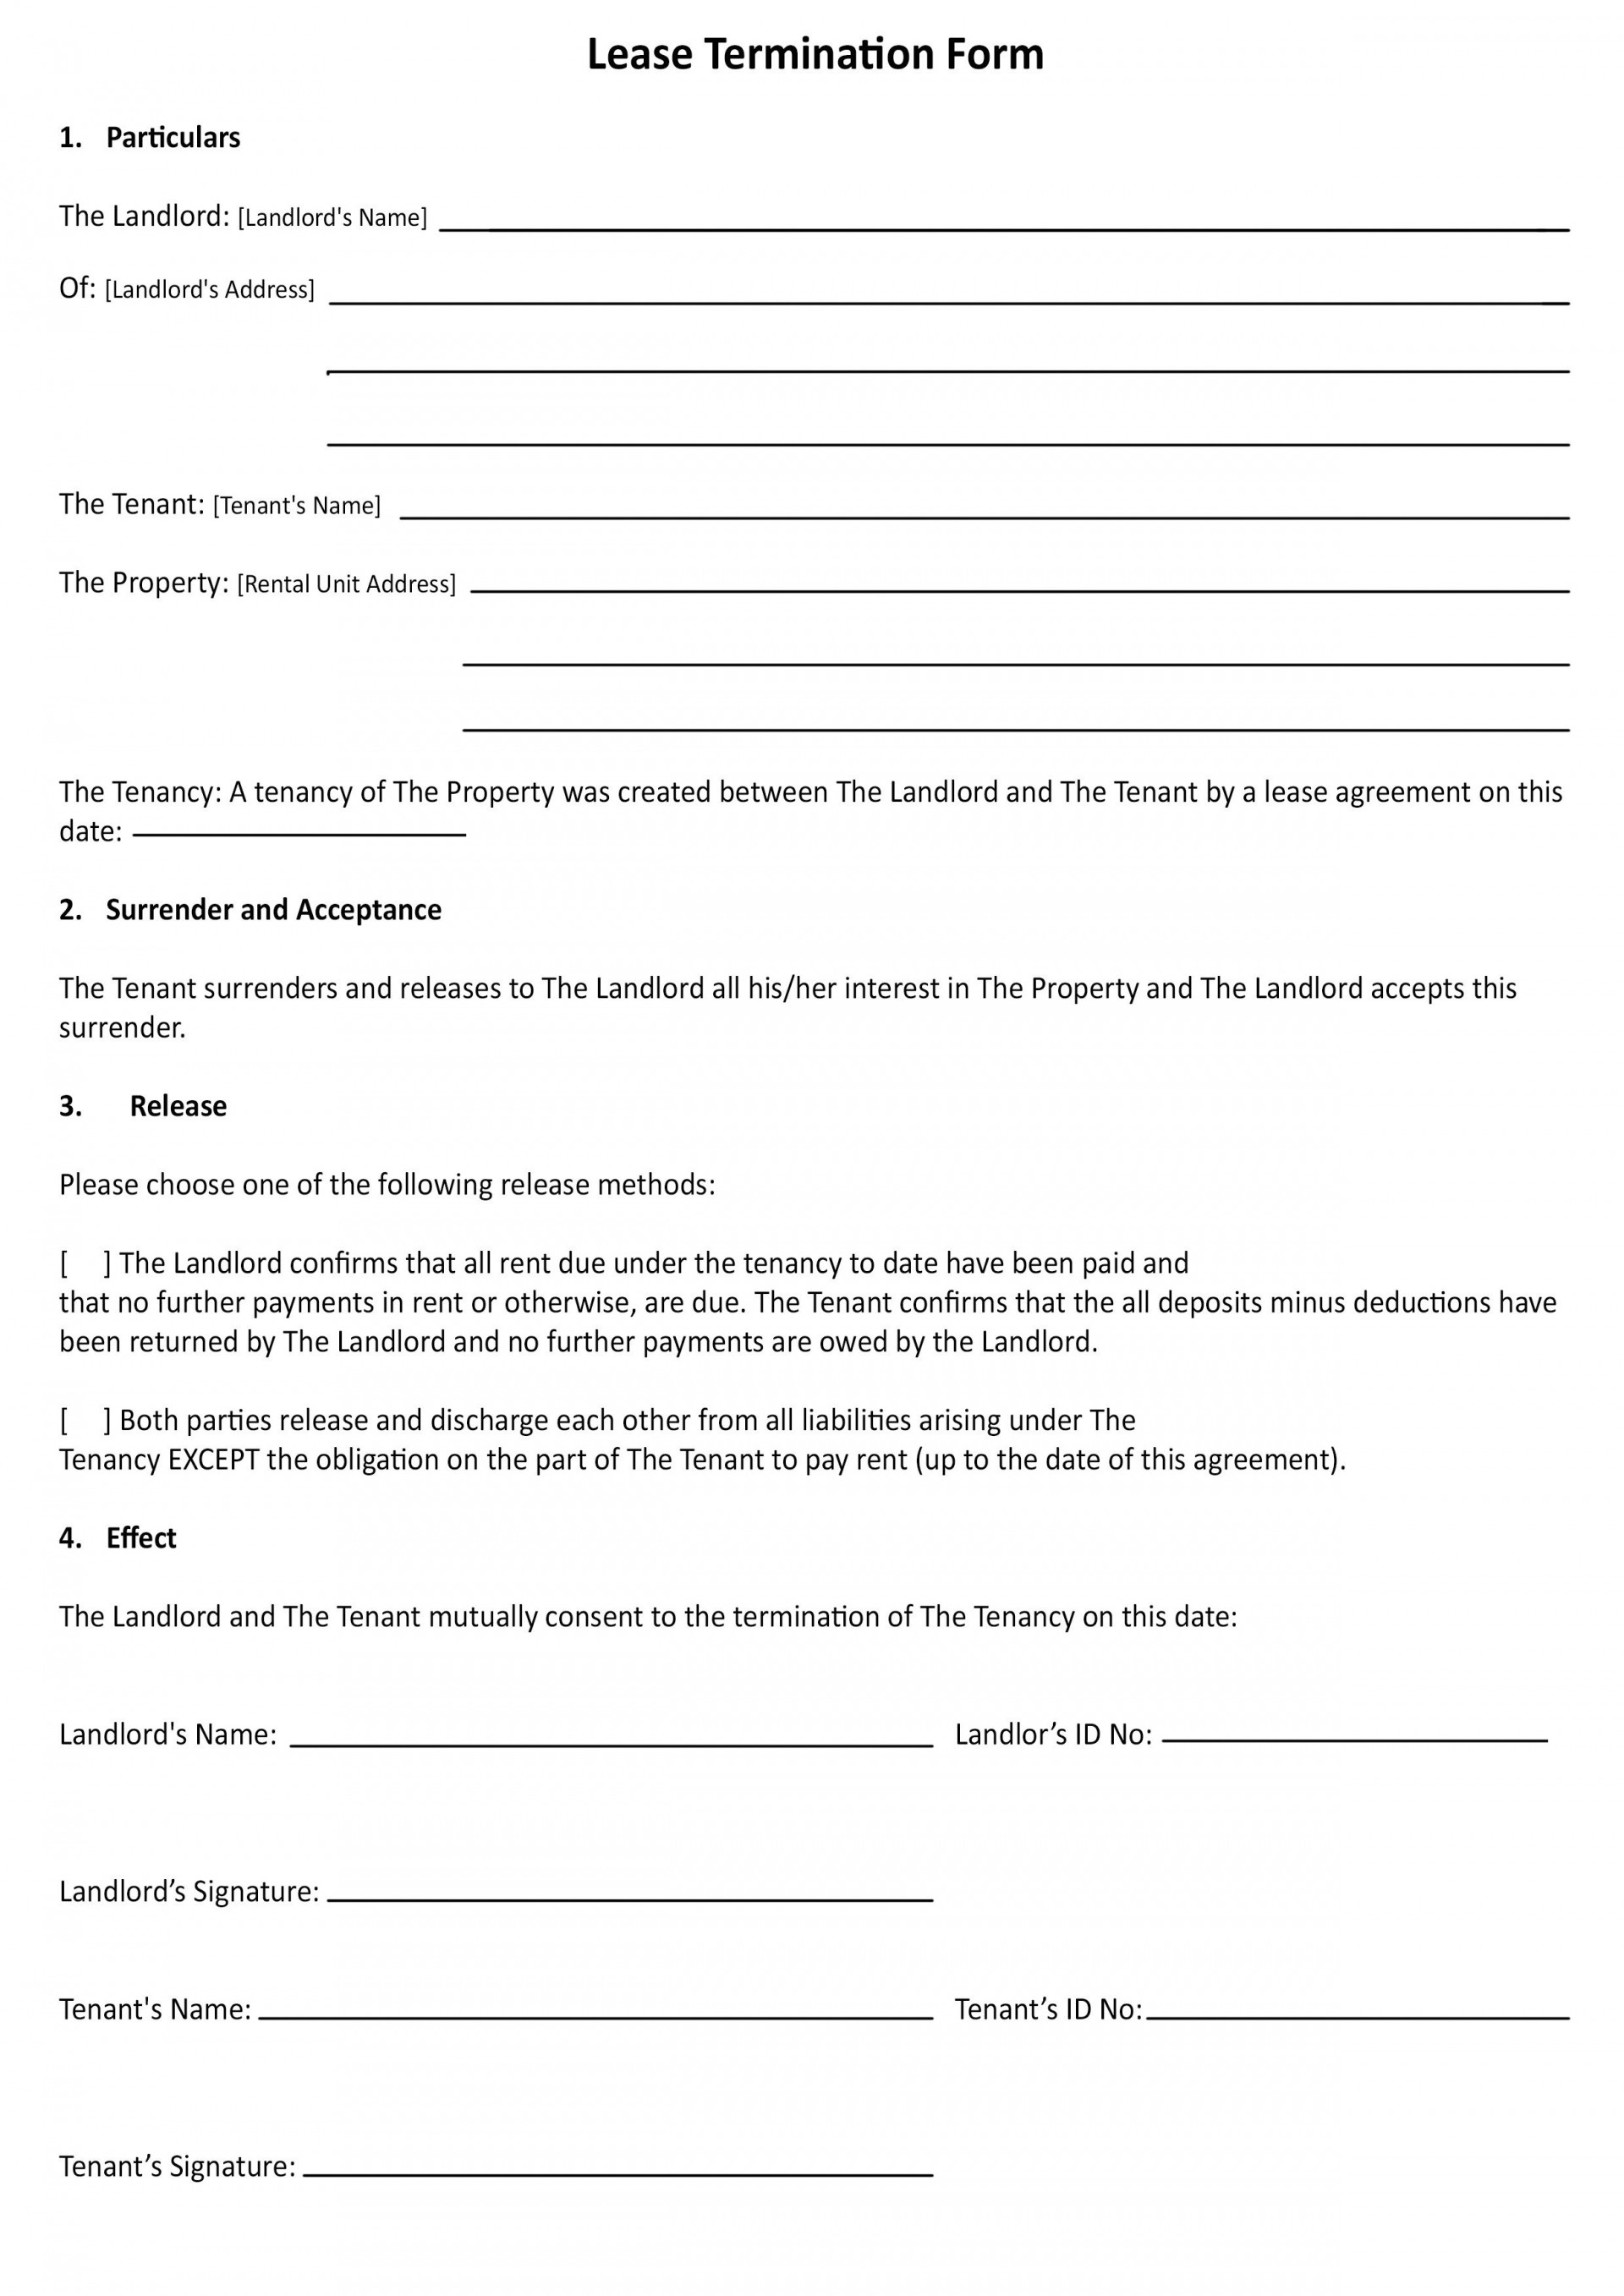 008 Stunning Lease Agreement Template Word South Africa High Definition  Free Simple Residential Commercial Document1920